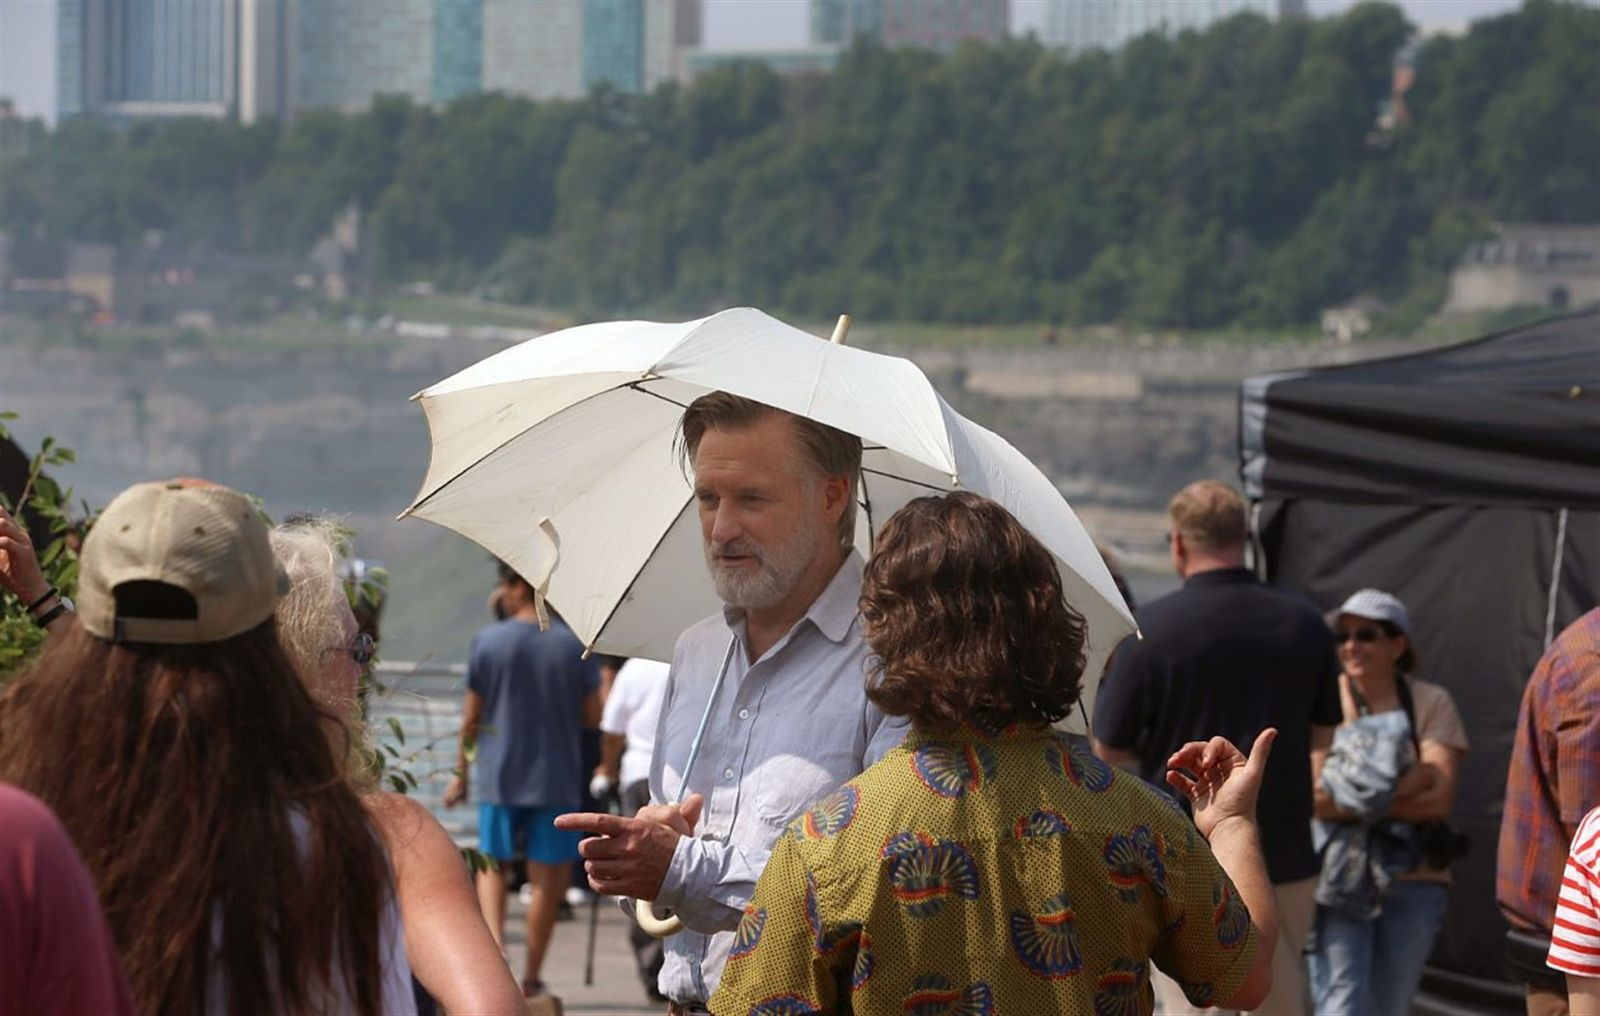 """An episode of the USA series """"The Sinner"""" was being filmed Thursday in Niagara Falls. Here, actor Bill Pullman prepares for a scene on on location in Niagara Falls State Park."""